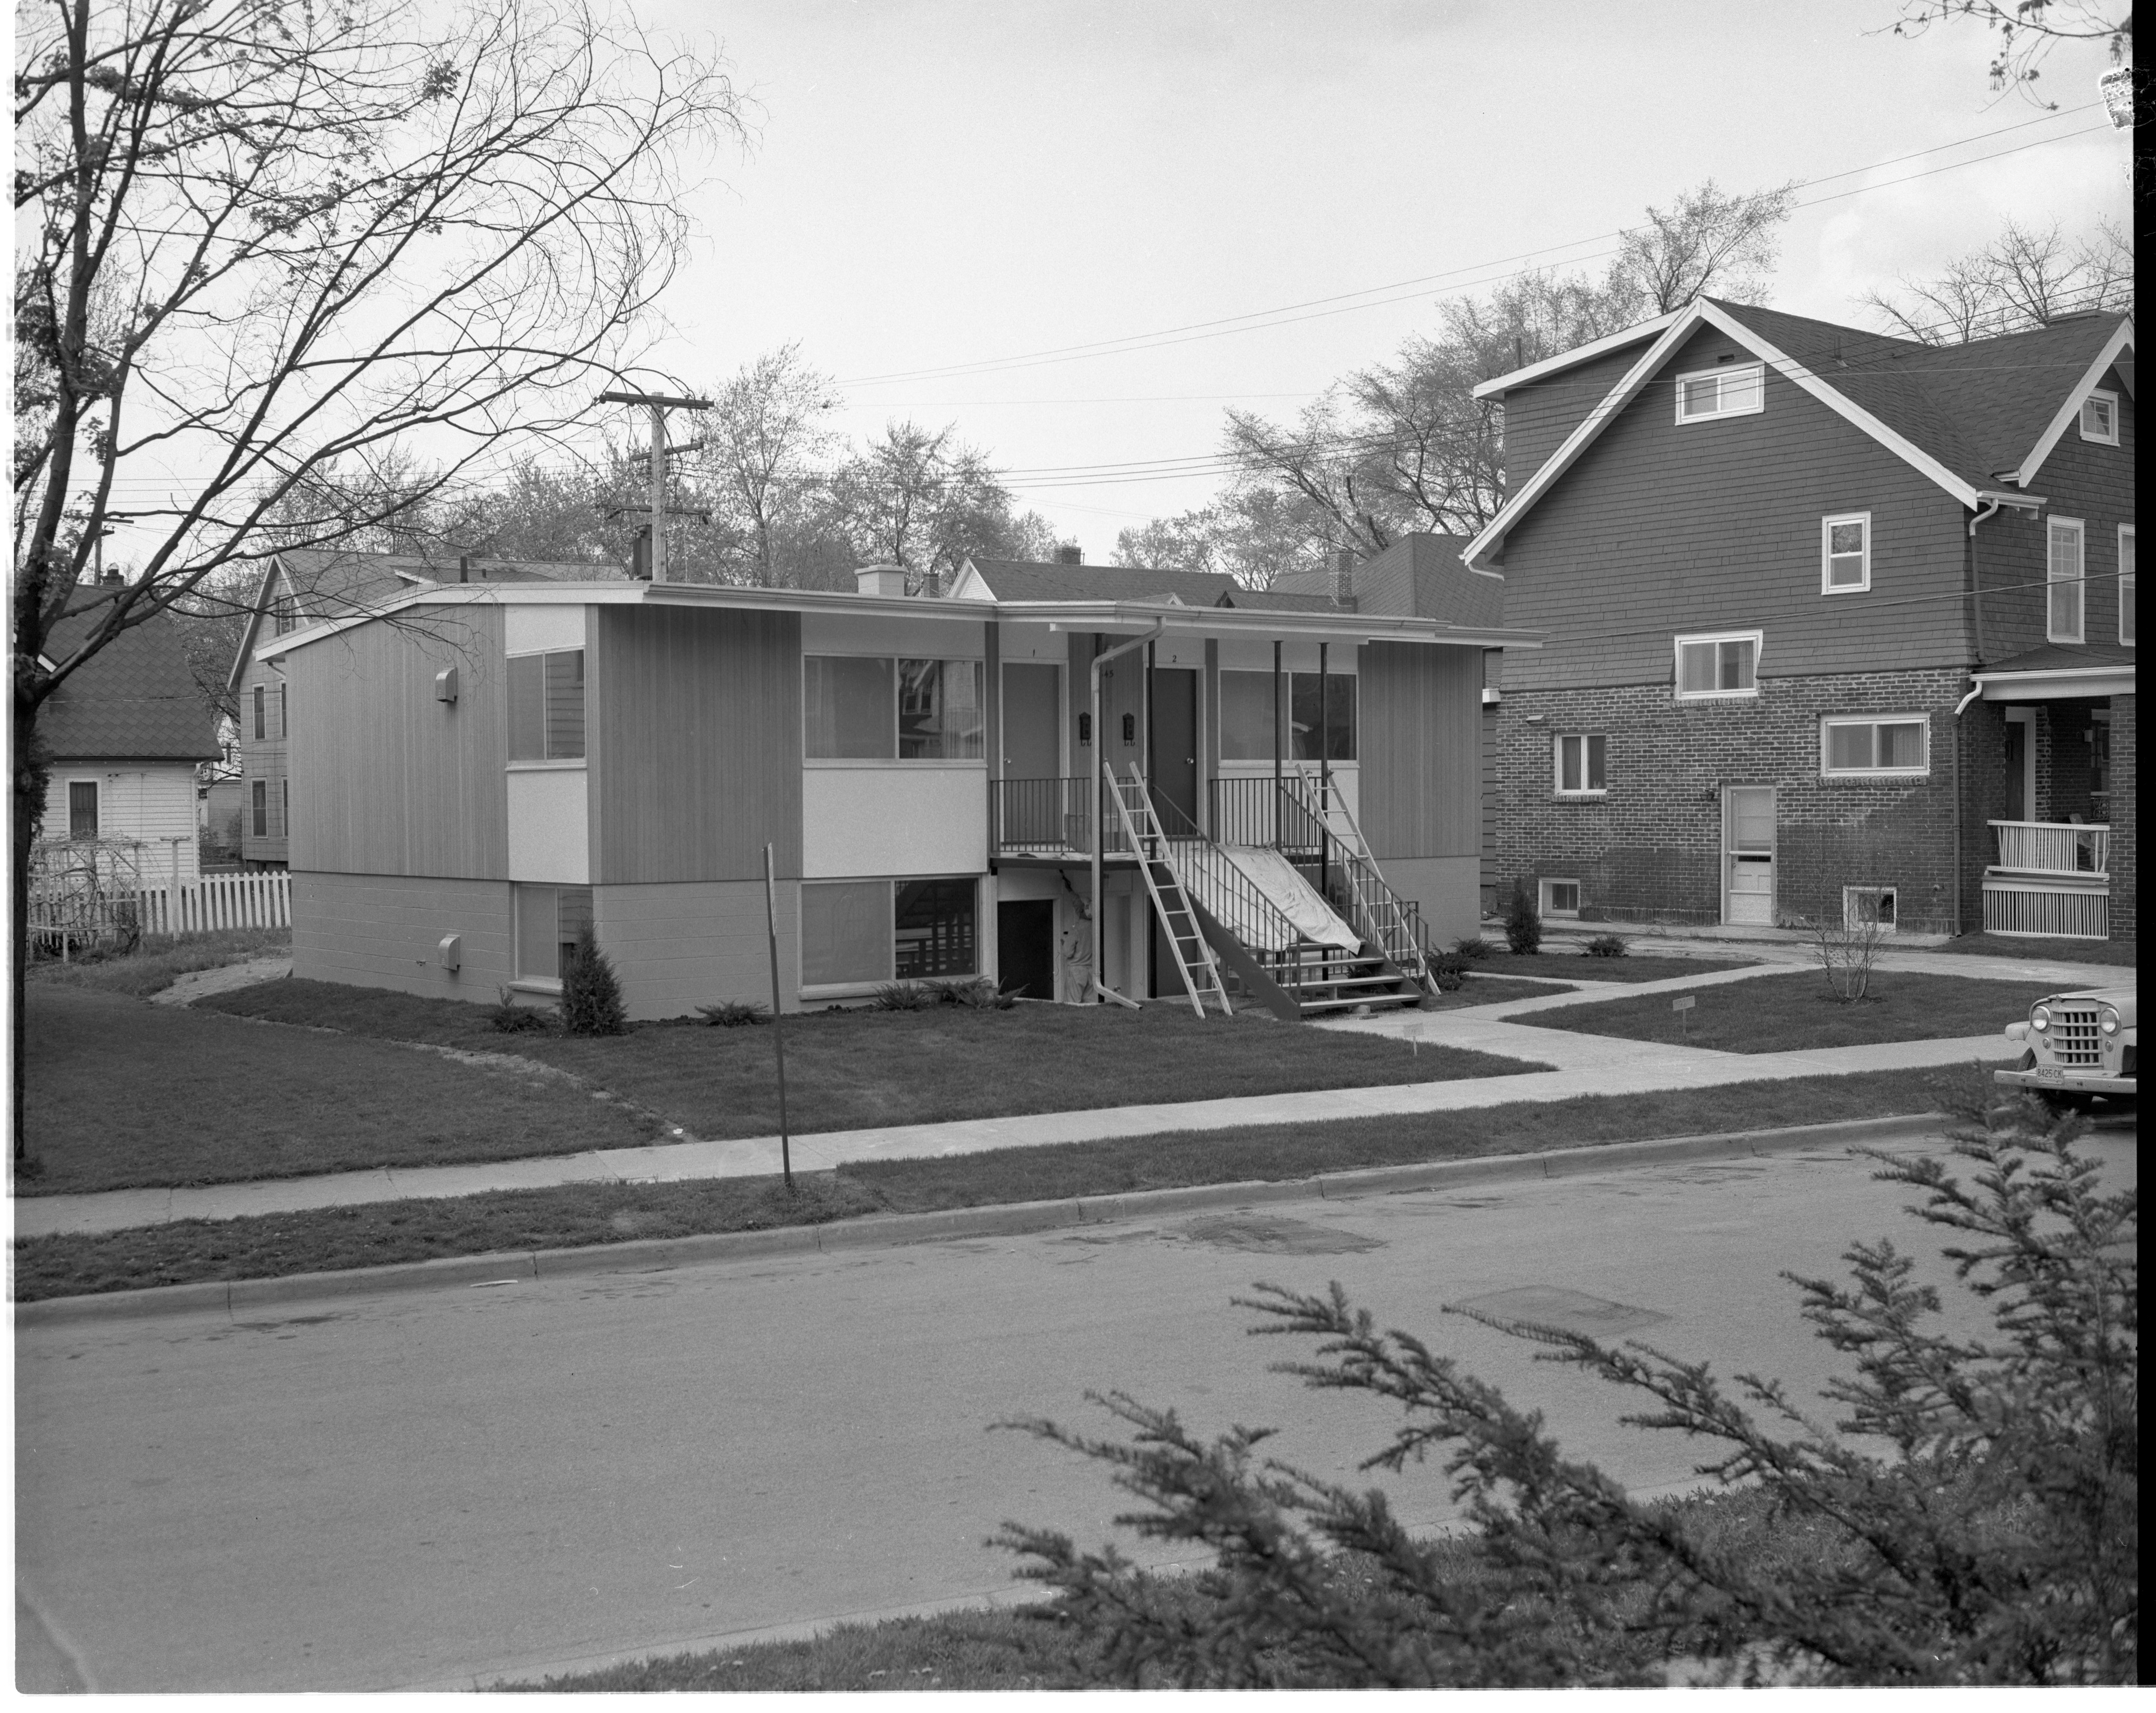 845 Brookwood Place - New Apartment Building On Site Of House Destroyed In May 1959 Windstorm, May 1960 image